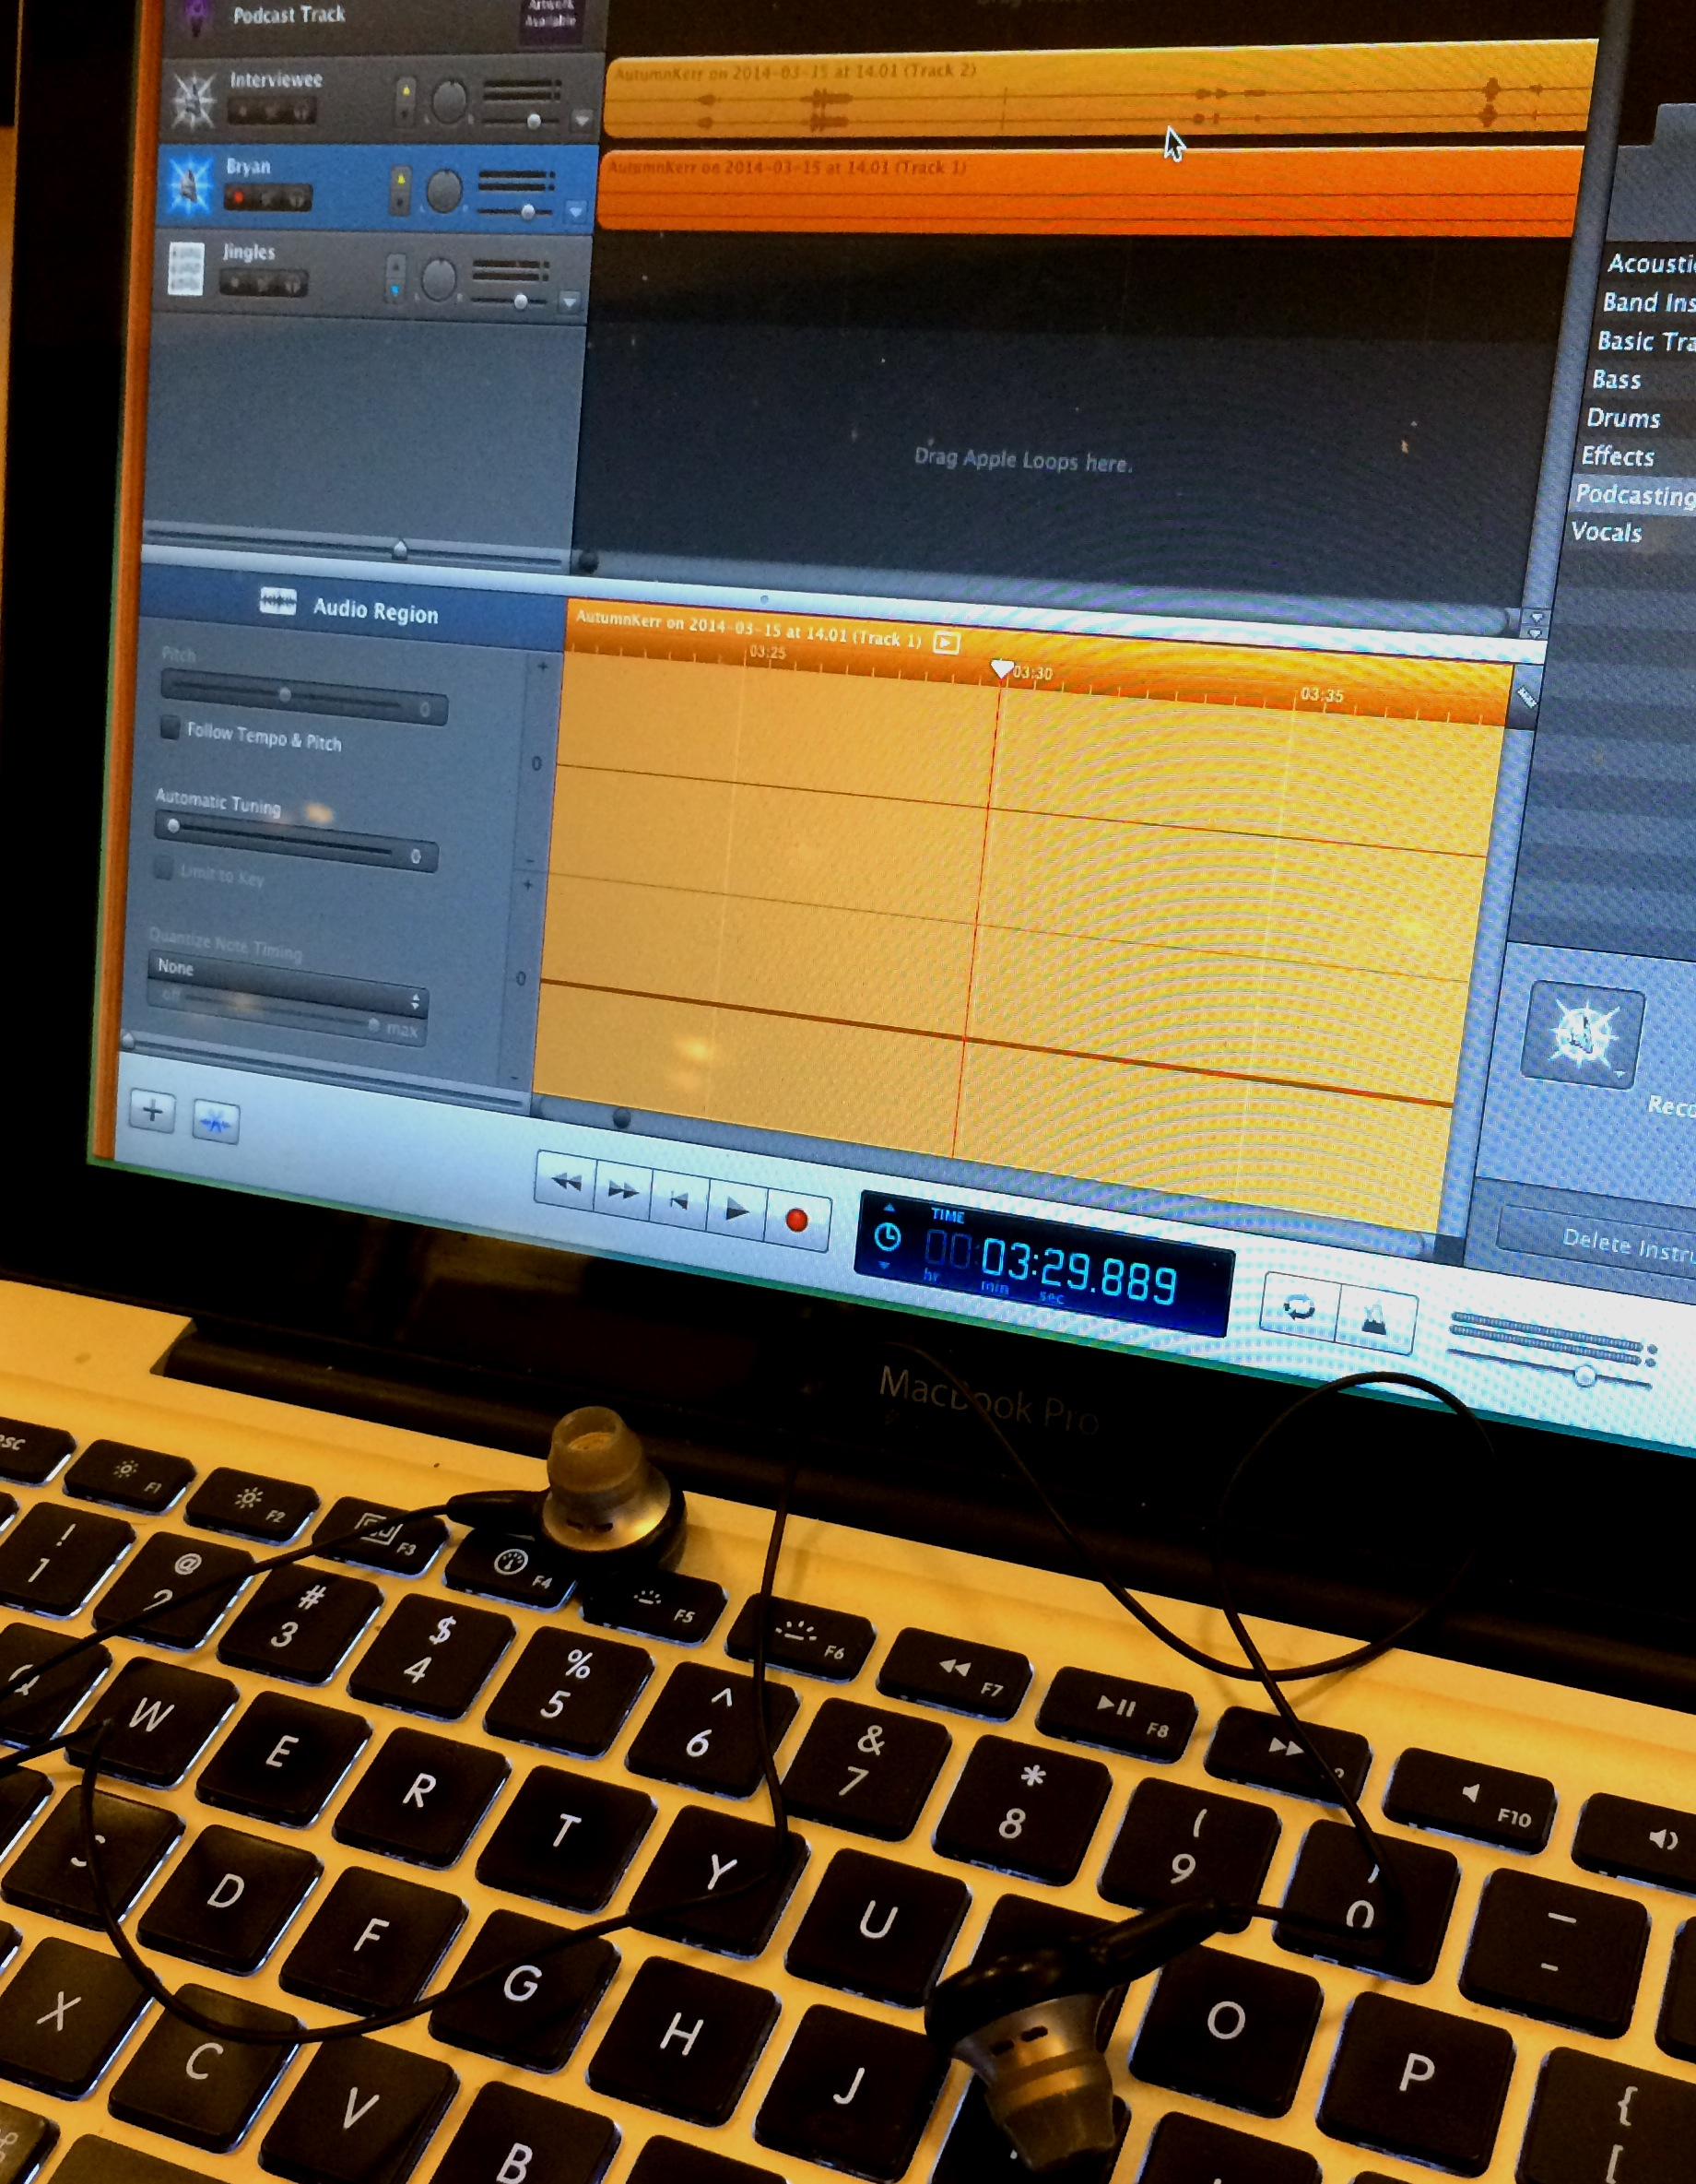 Editing some audio